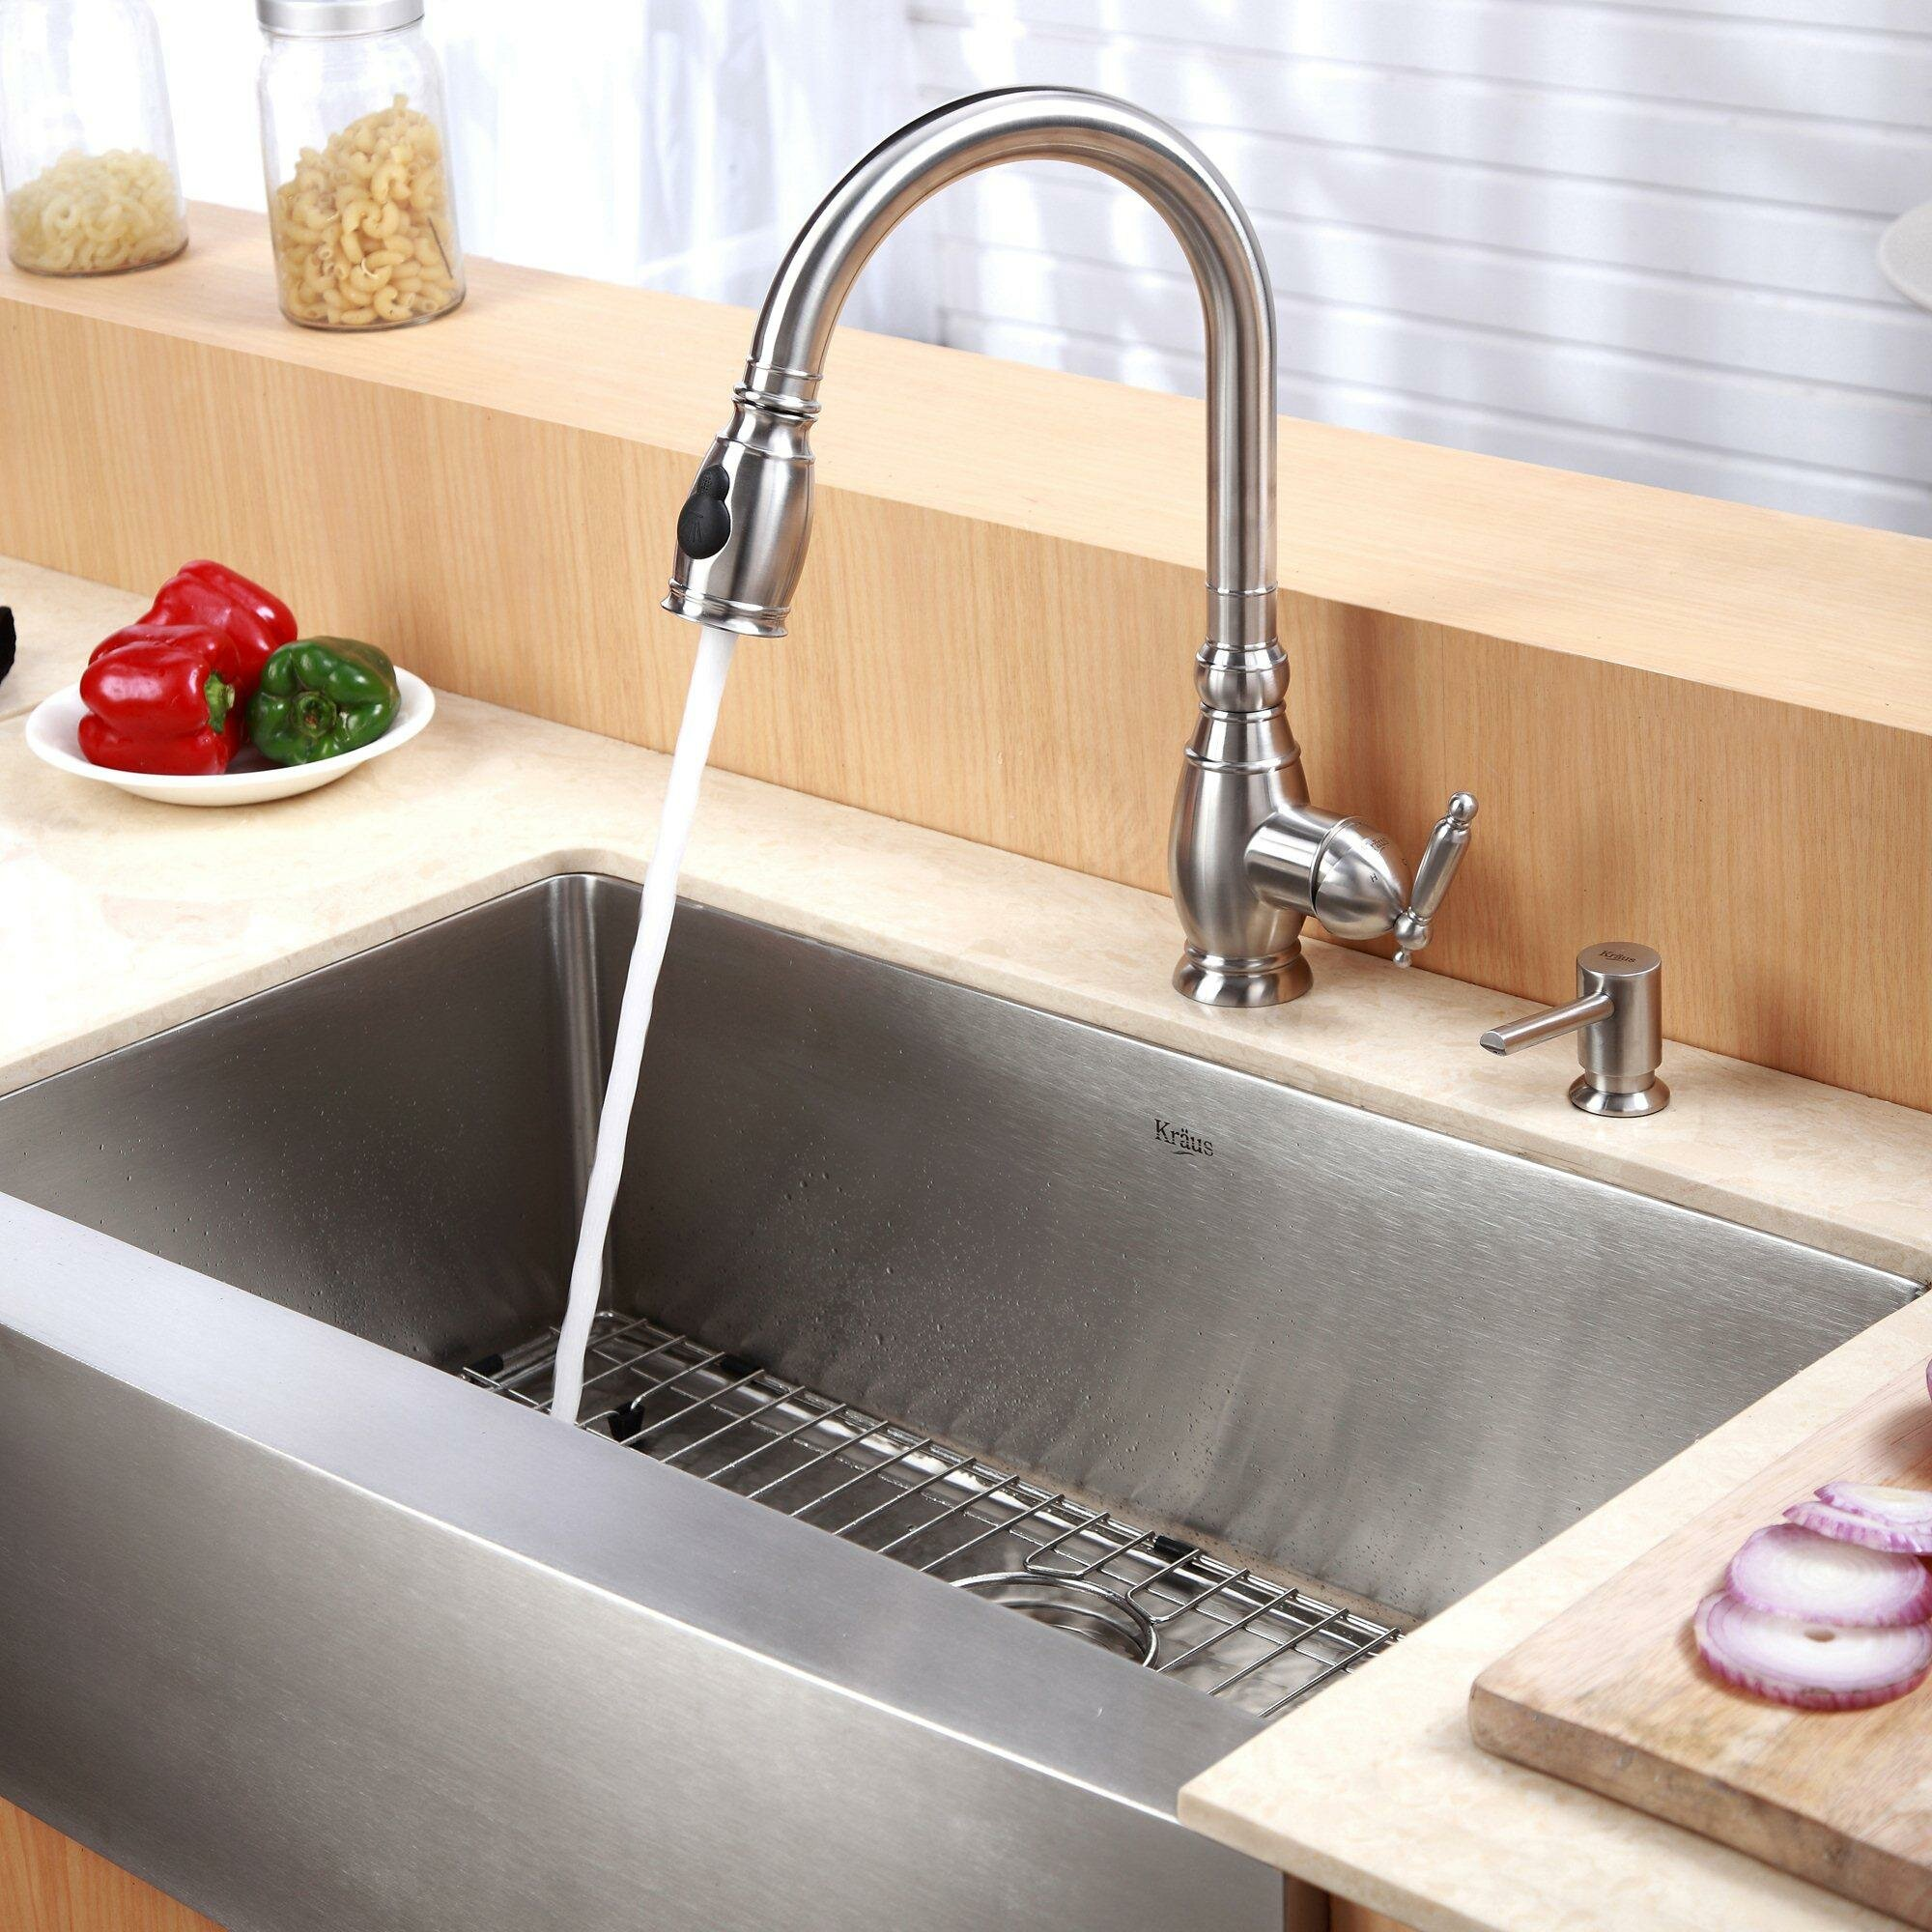 20 Farmhouse Sink : Kraus 29.75